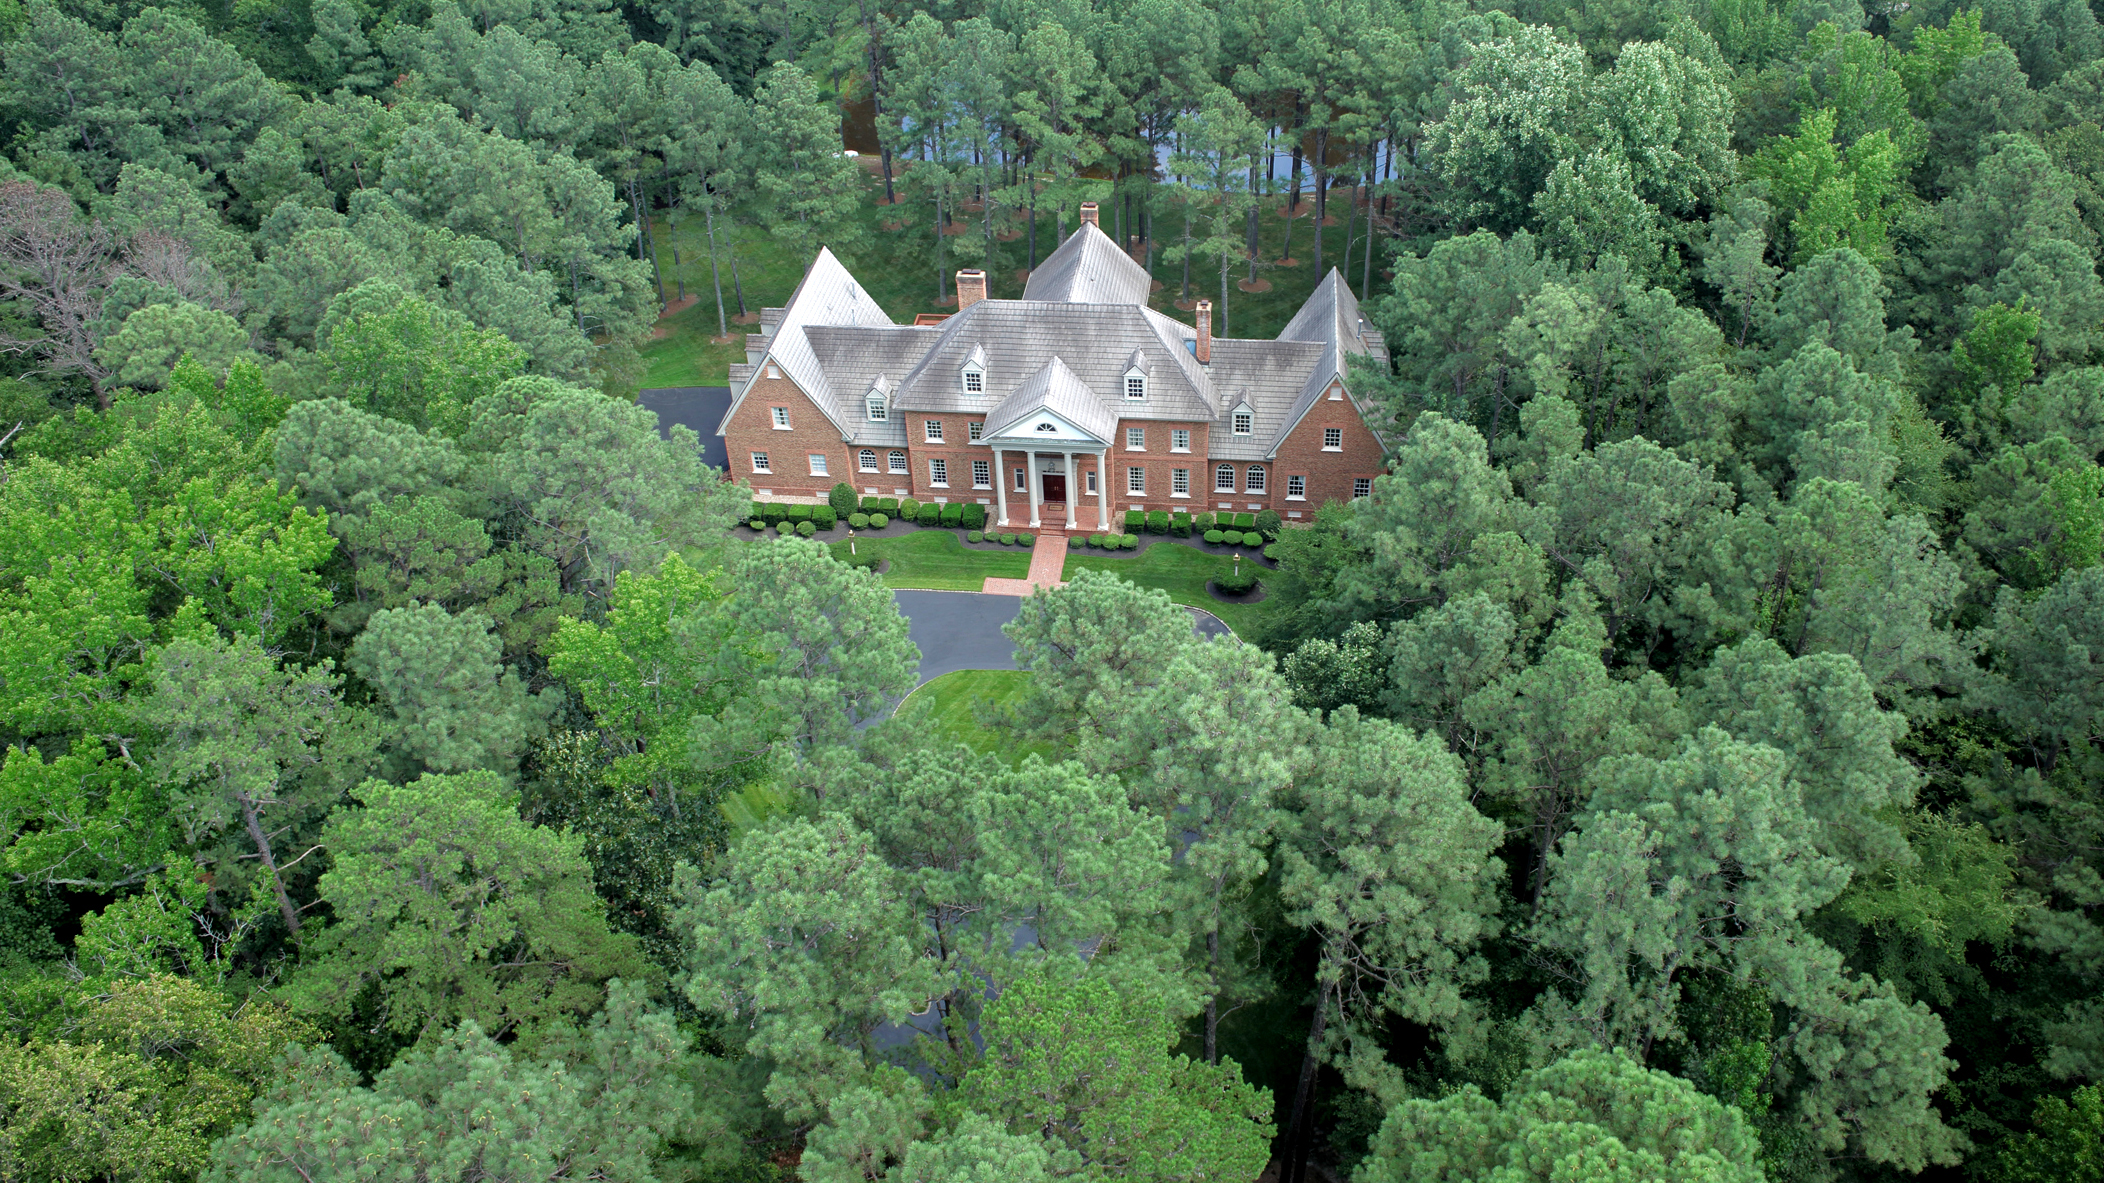 Single Family Home for Sale at 221 Dryden Lane Henrico, Virginia, 23229 United States